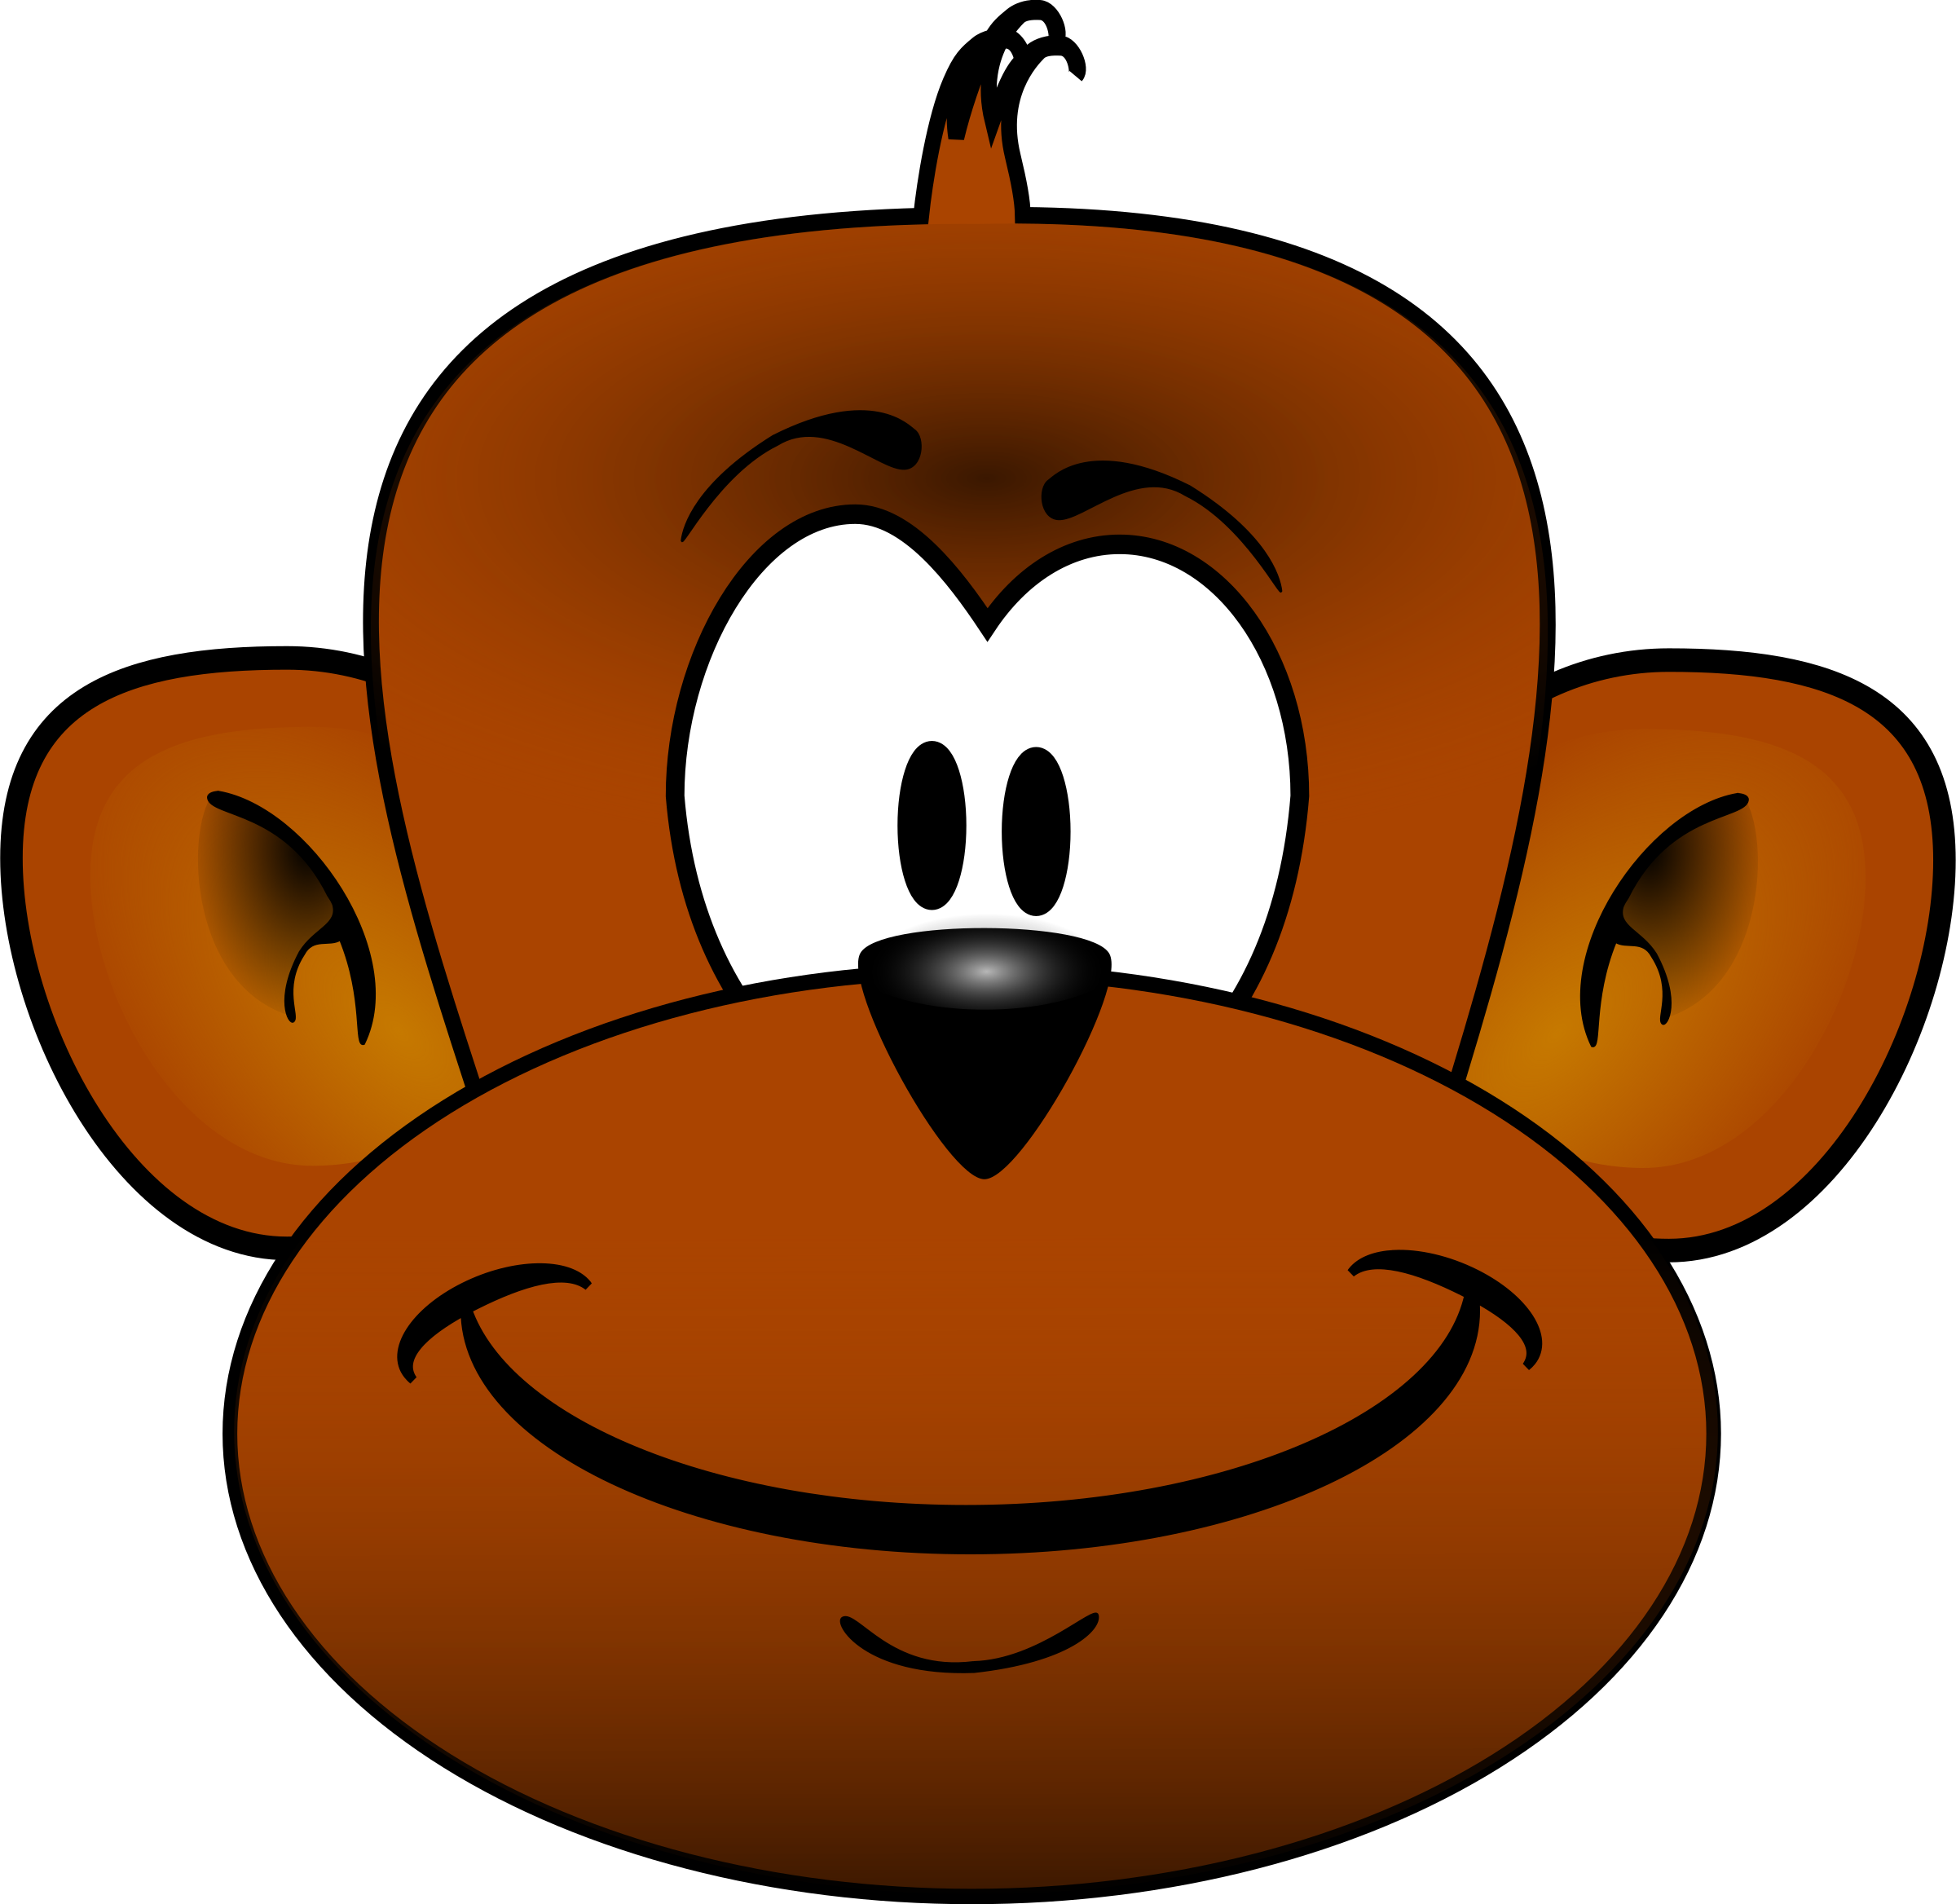 Monkey head by gmad